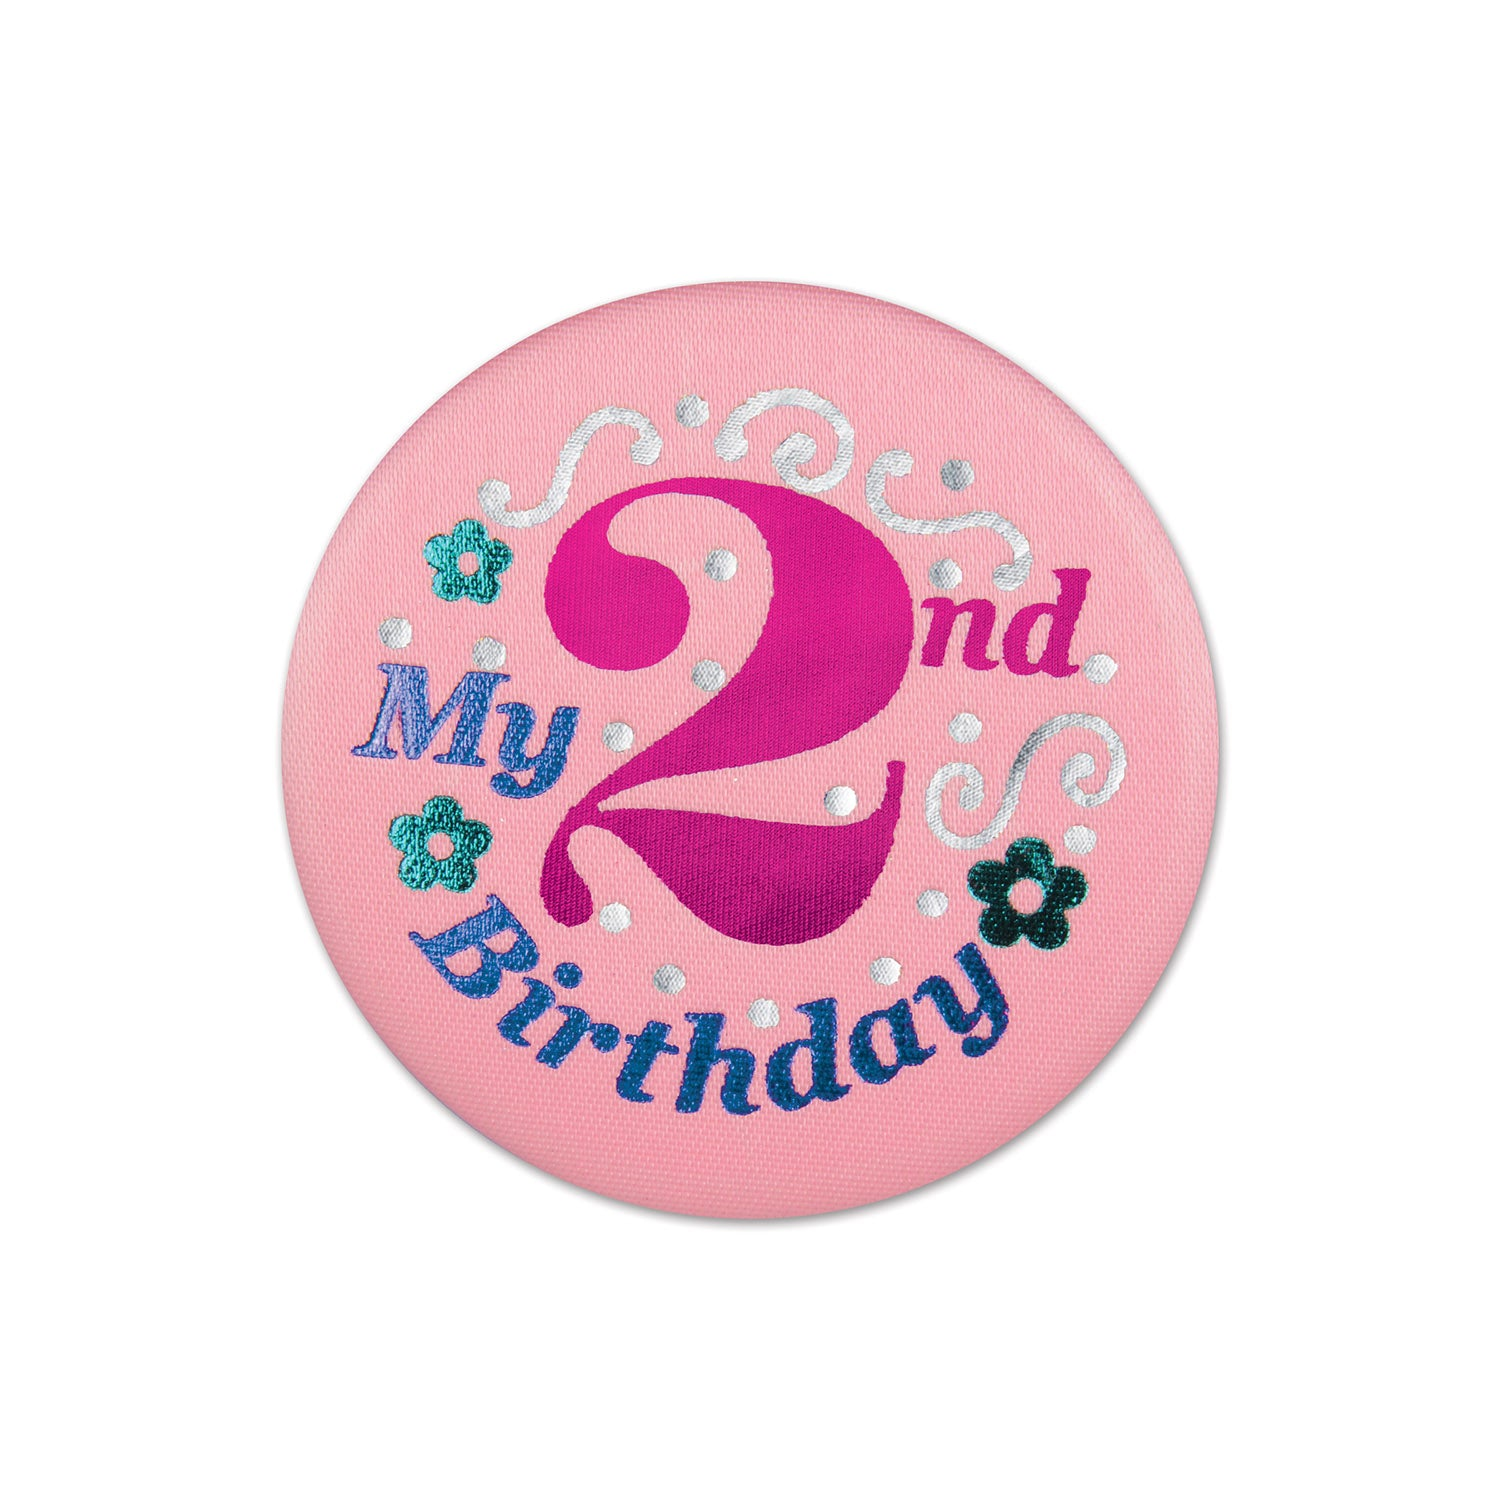 My 2nd Birthday Satin Button, pink by Beistle - 2nd Birthday Party Decorations